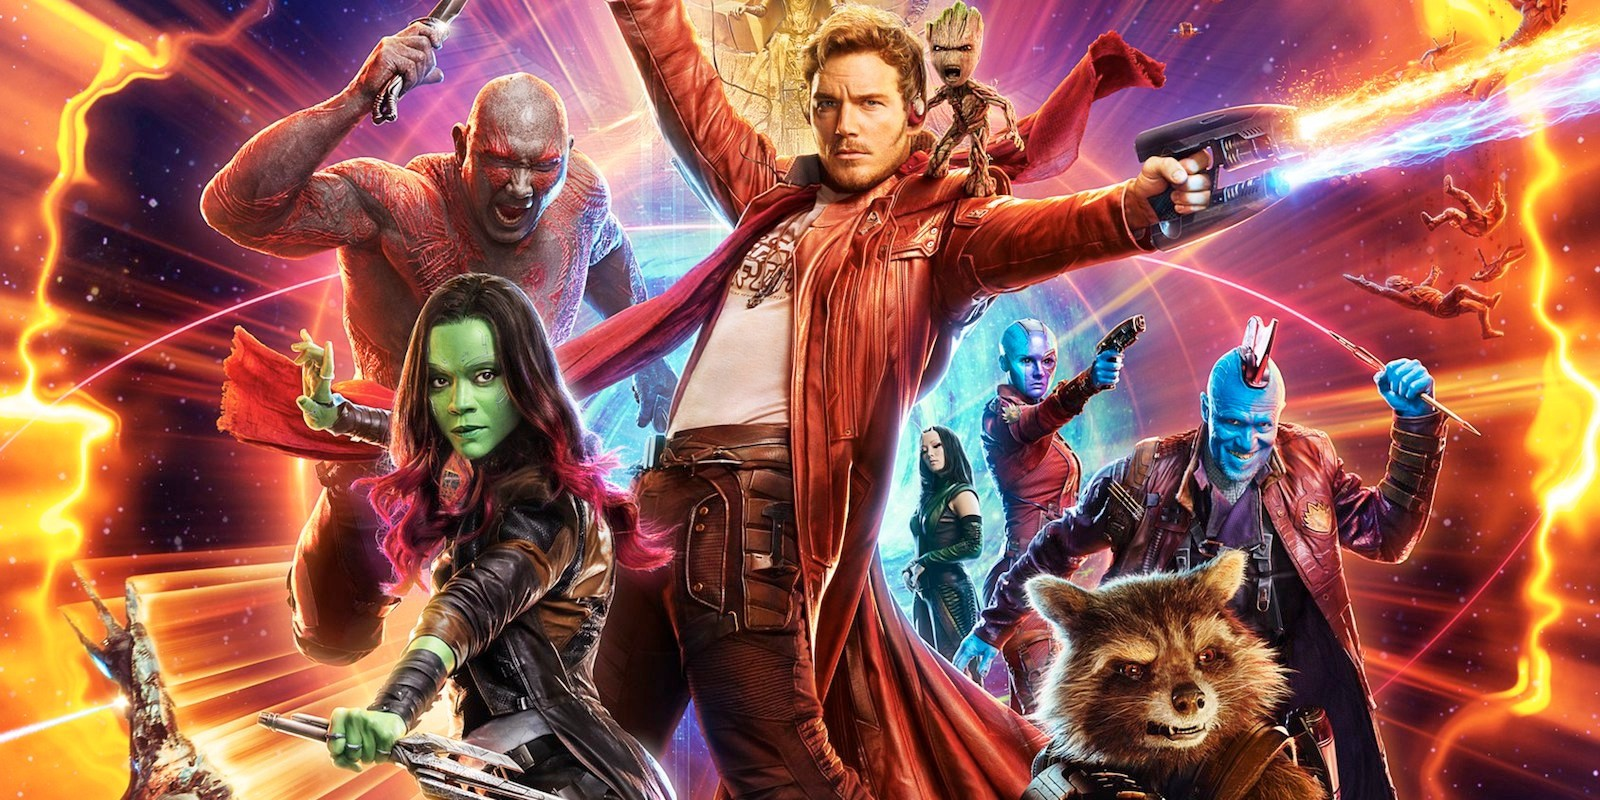 guardians of the galaxy vol 2 watch free online